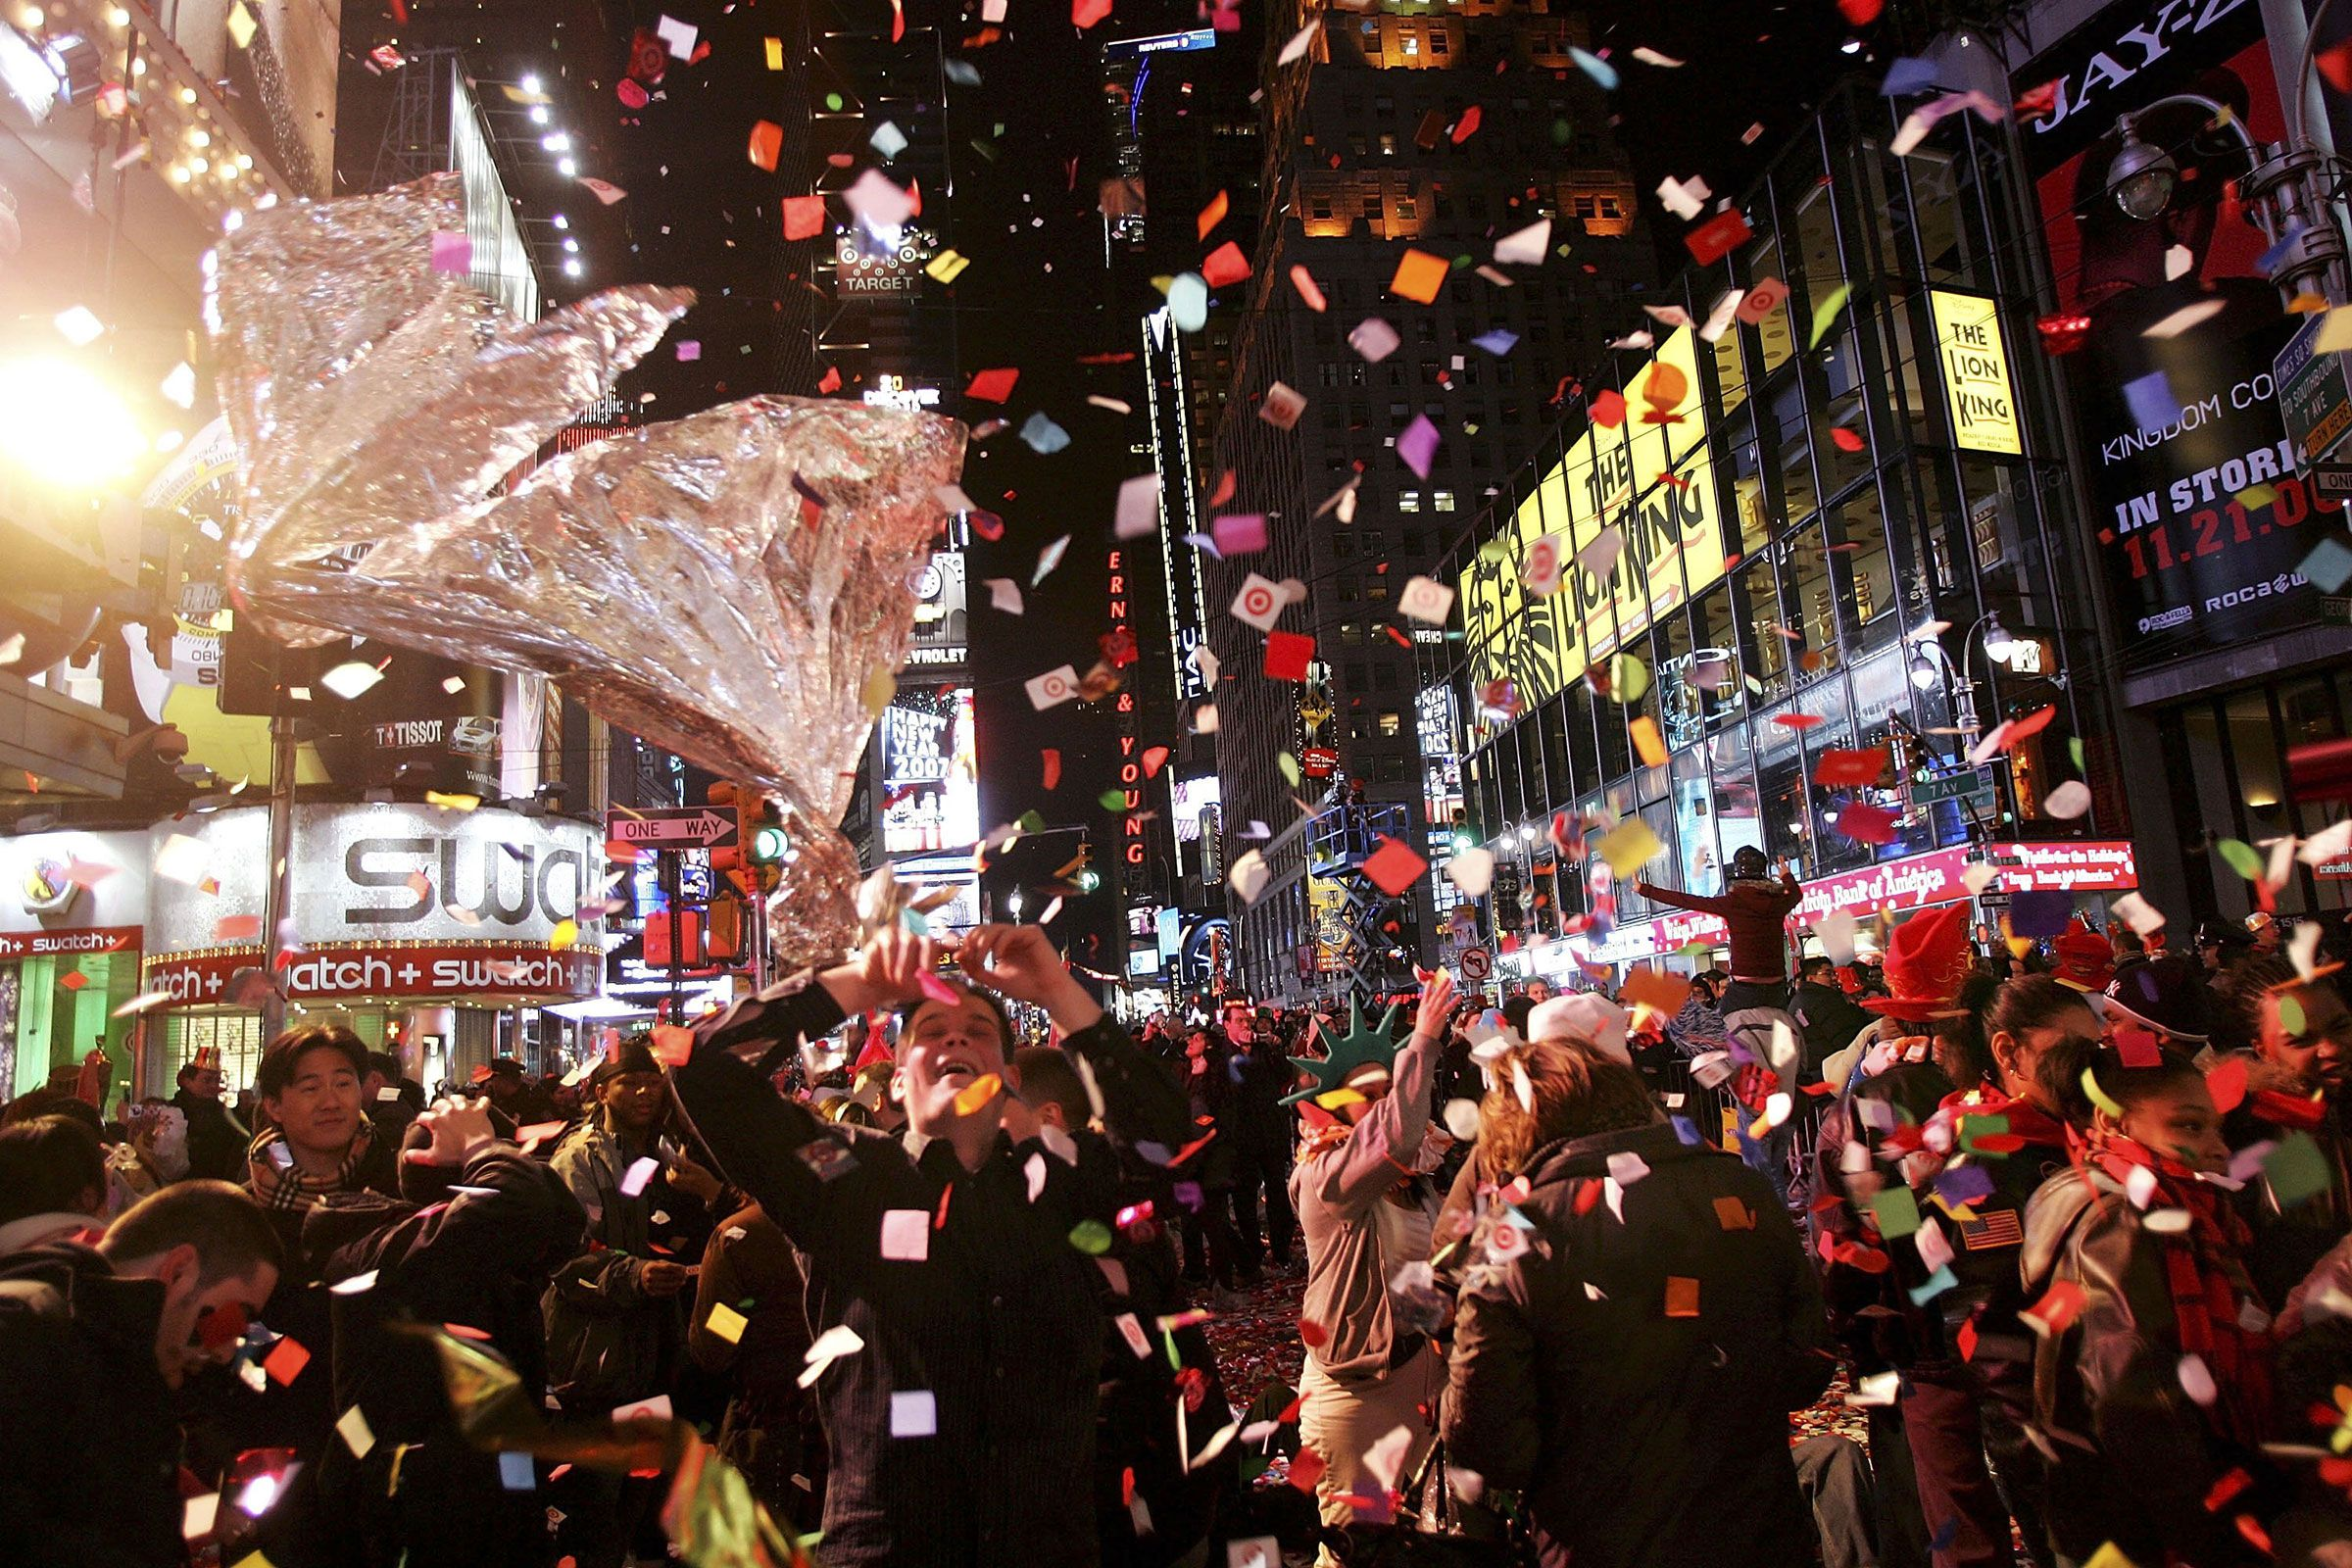 How to Watch the New Year's Eve Ball Drop: Live Stream, TV